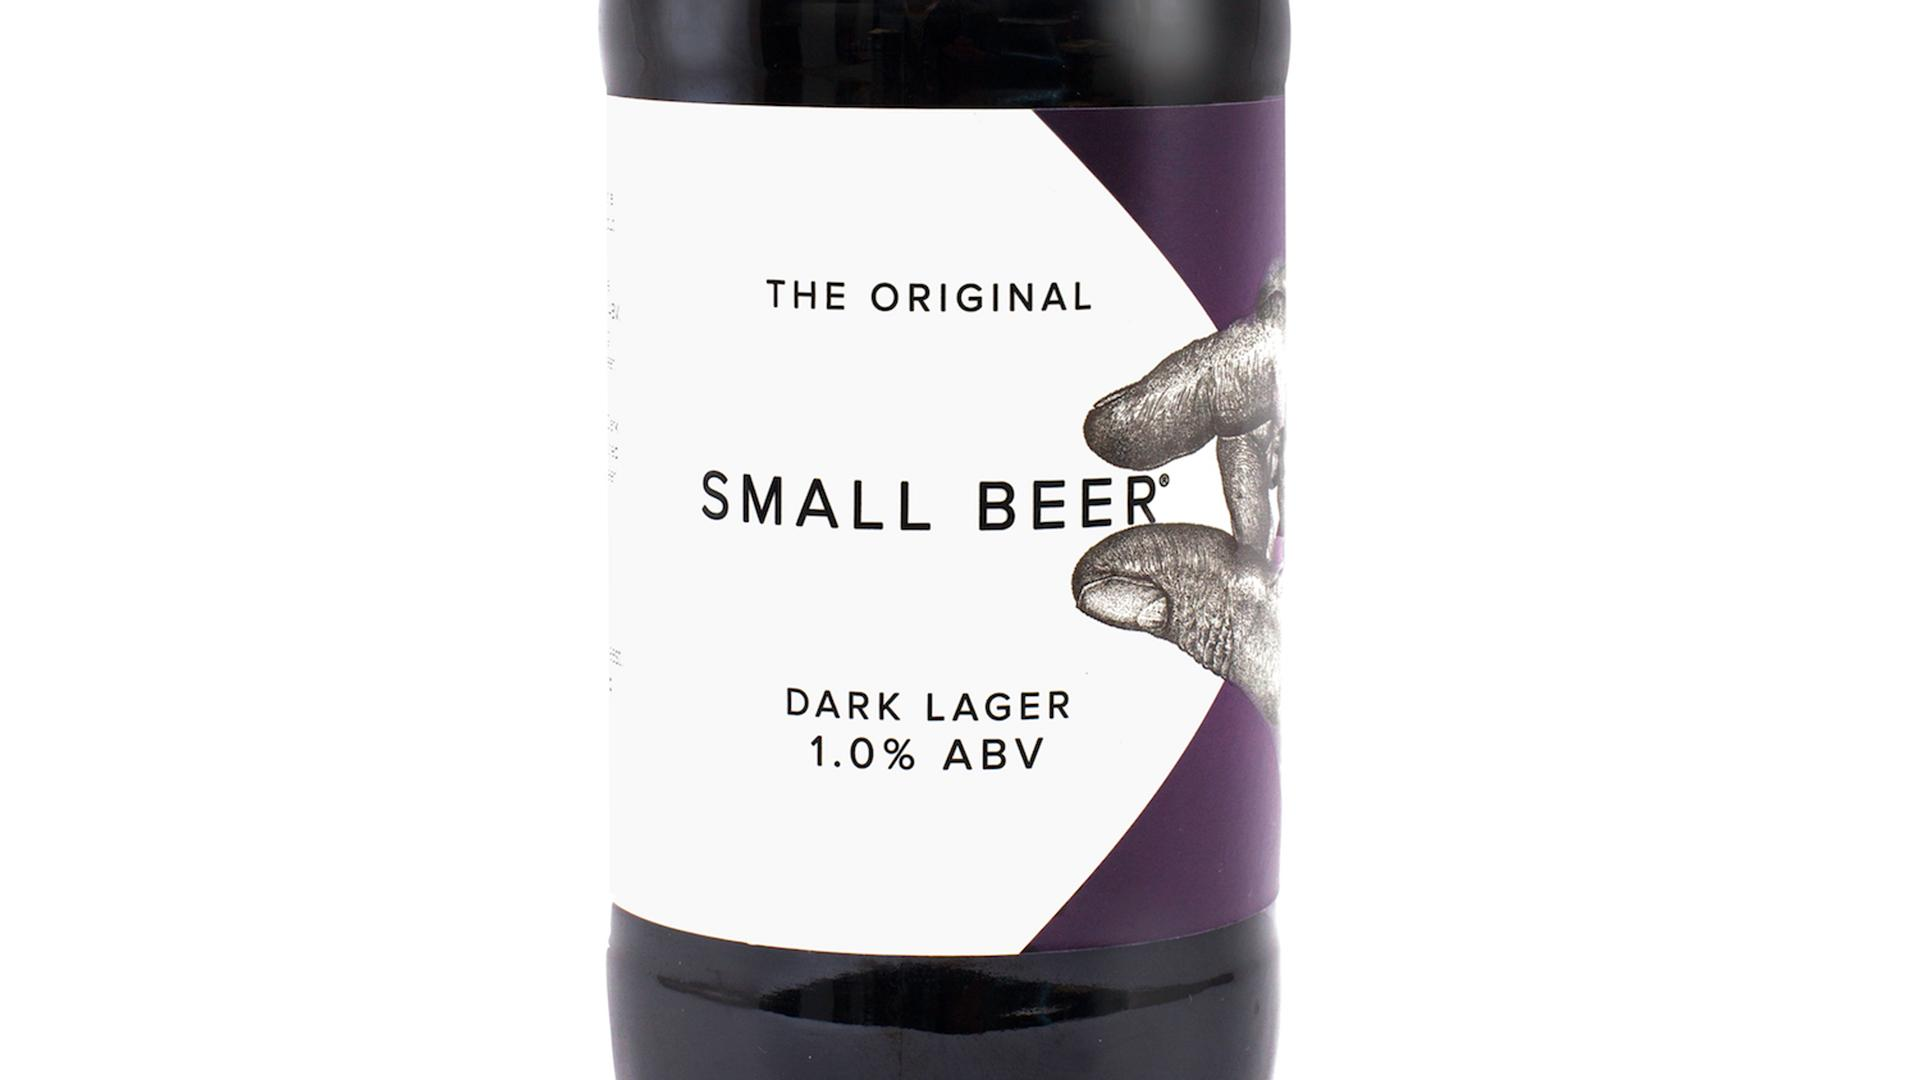 Non Alcoholic Beers London – Small Beer Brew Co.'s Dark Lager – 1.0% ABV